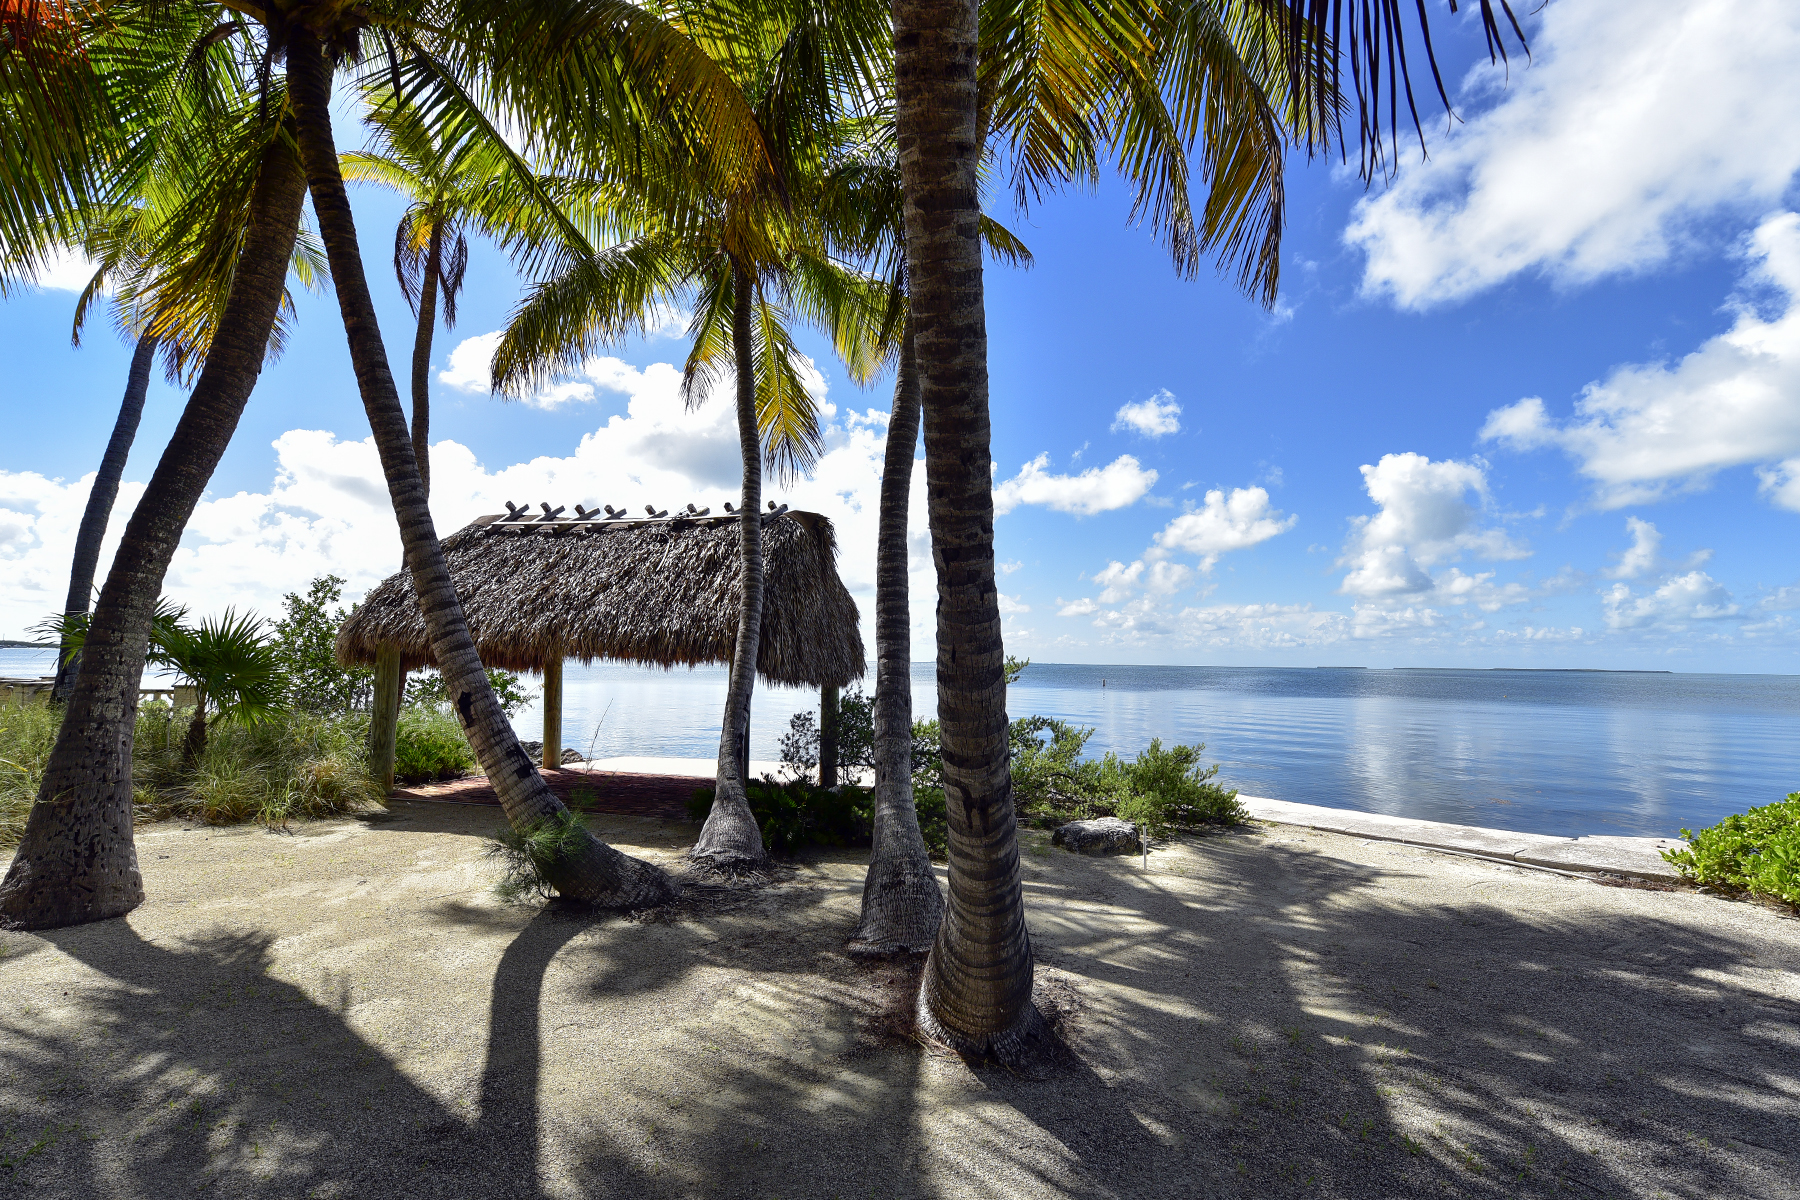 Single Family Home for Sale at Timeless Classic Bayfront Estate 82698 Overseas Highway Islamorada, Florida 33036 United States